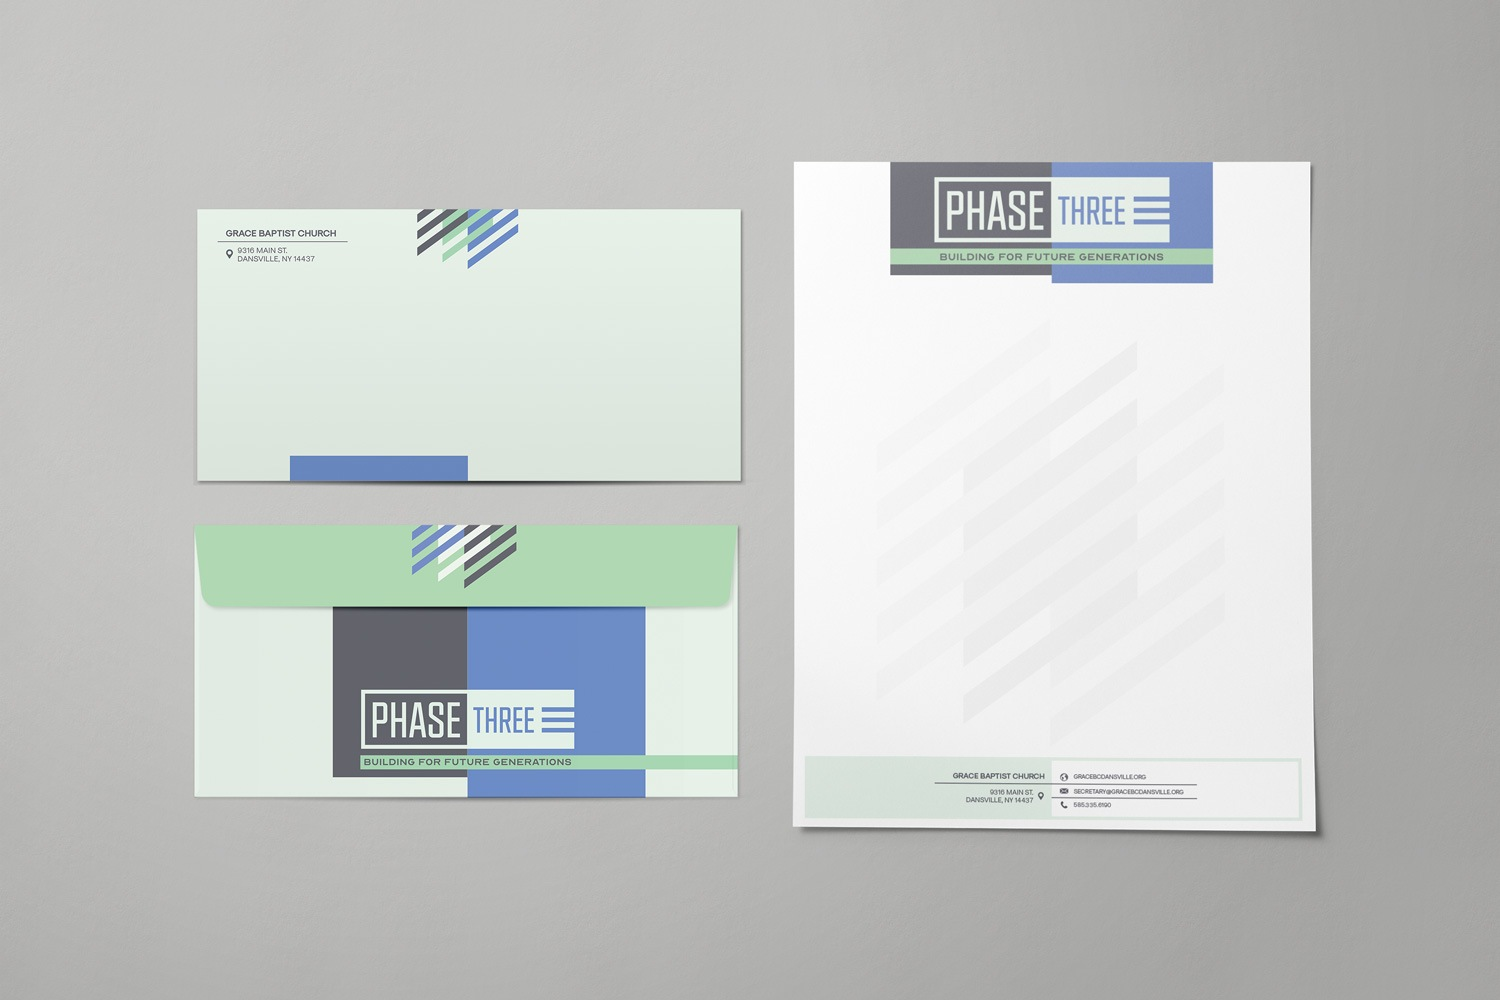 Church capital campaign letterhead and envelope examples for baptist church themes, campaign materials y Abstract Union